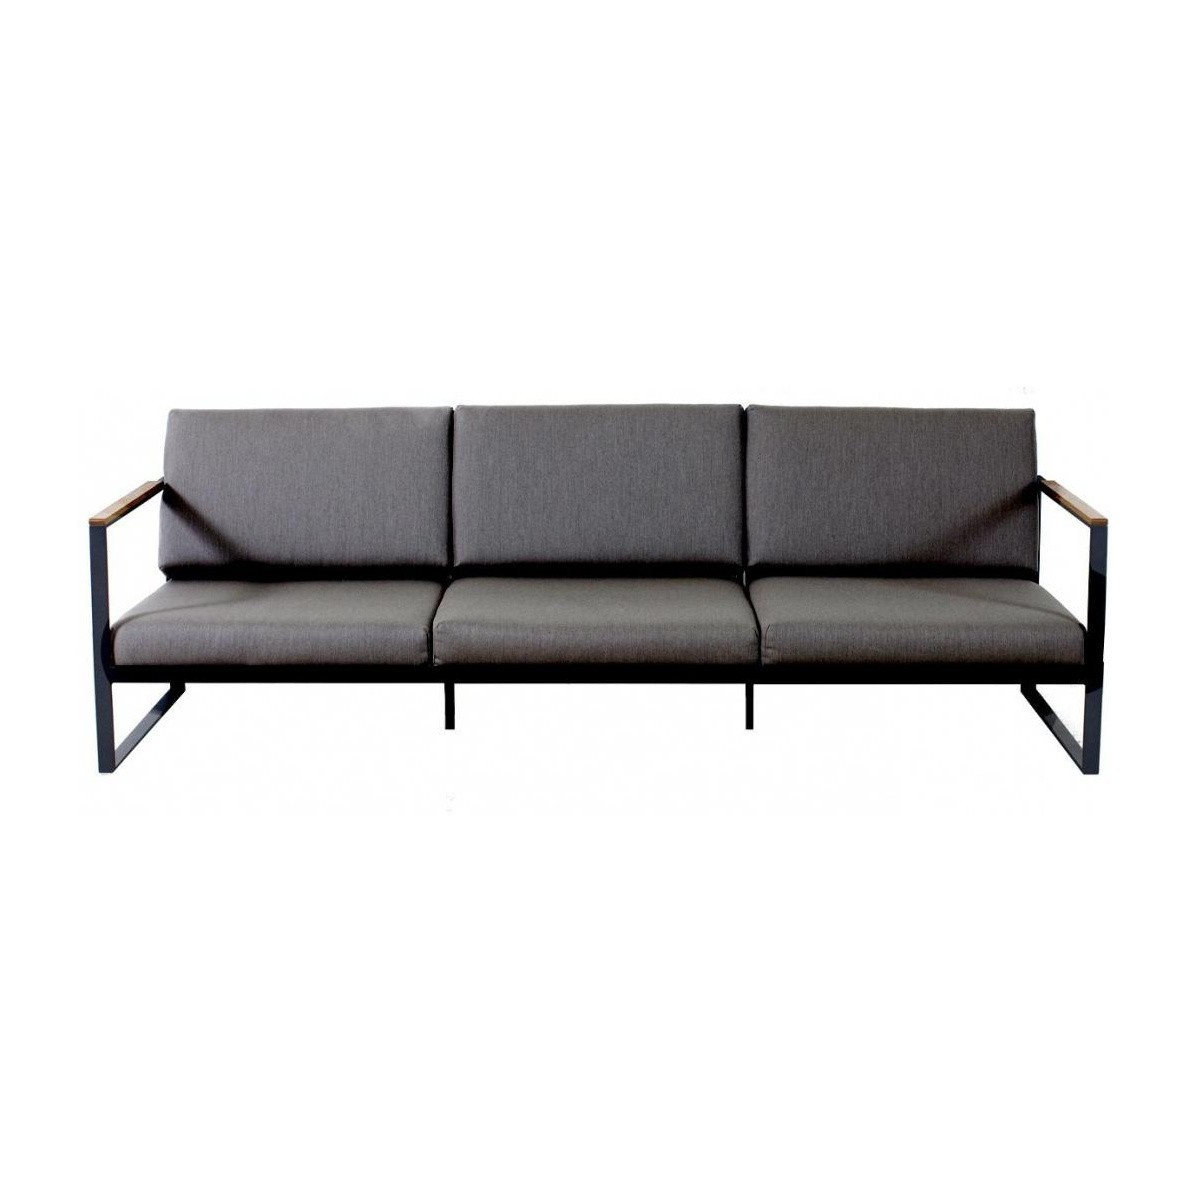 Garden Easy 3 Seater Outdoor Sofa